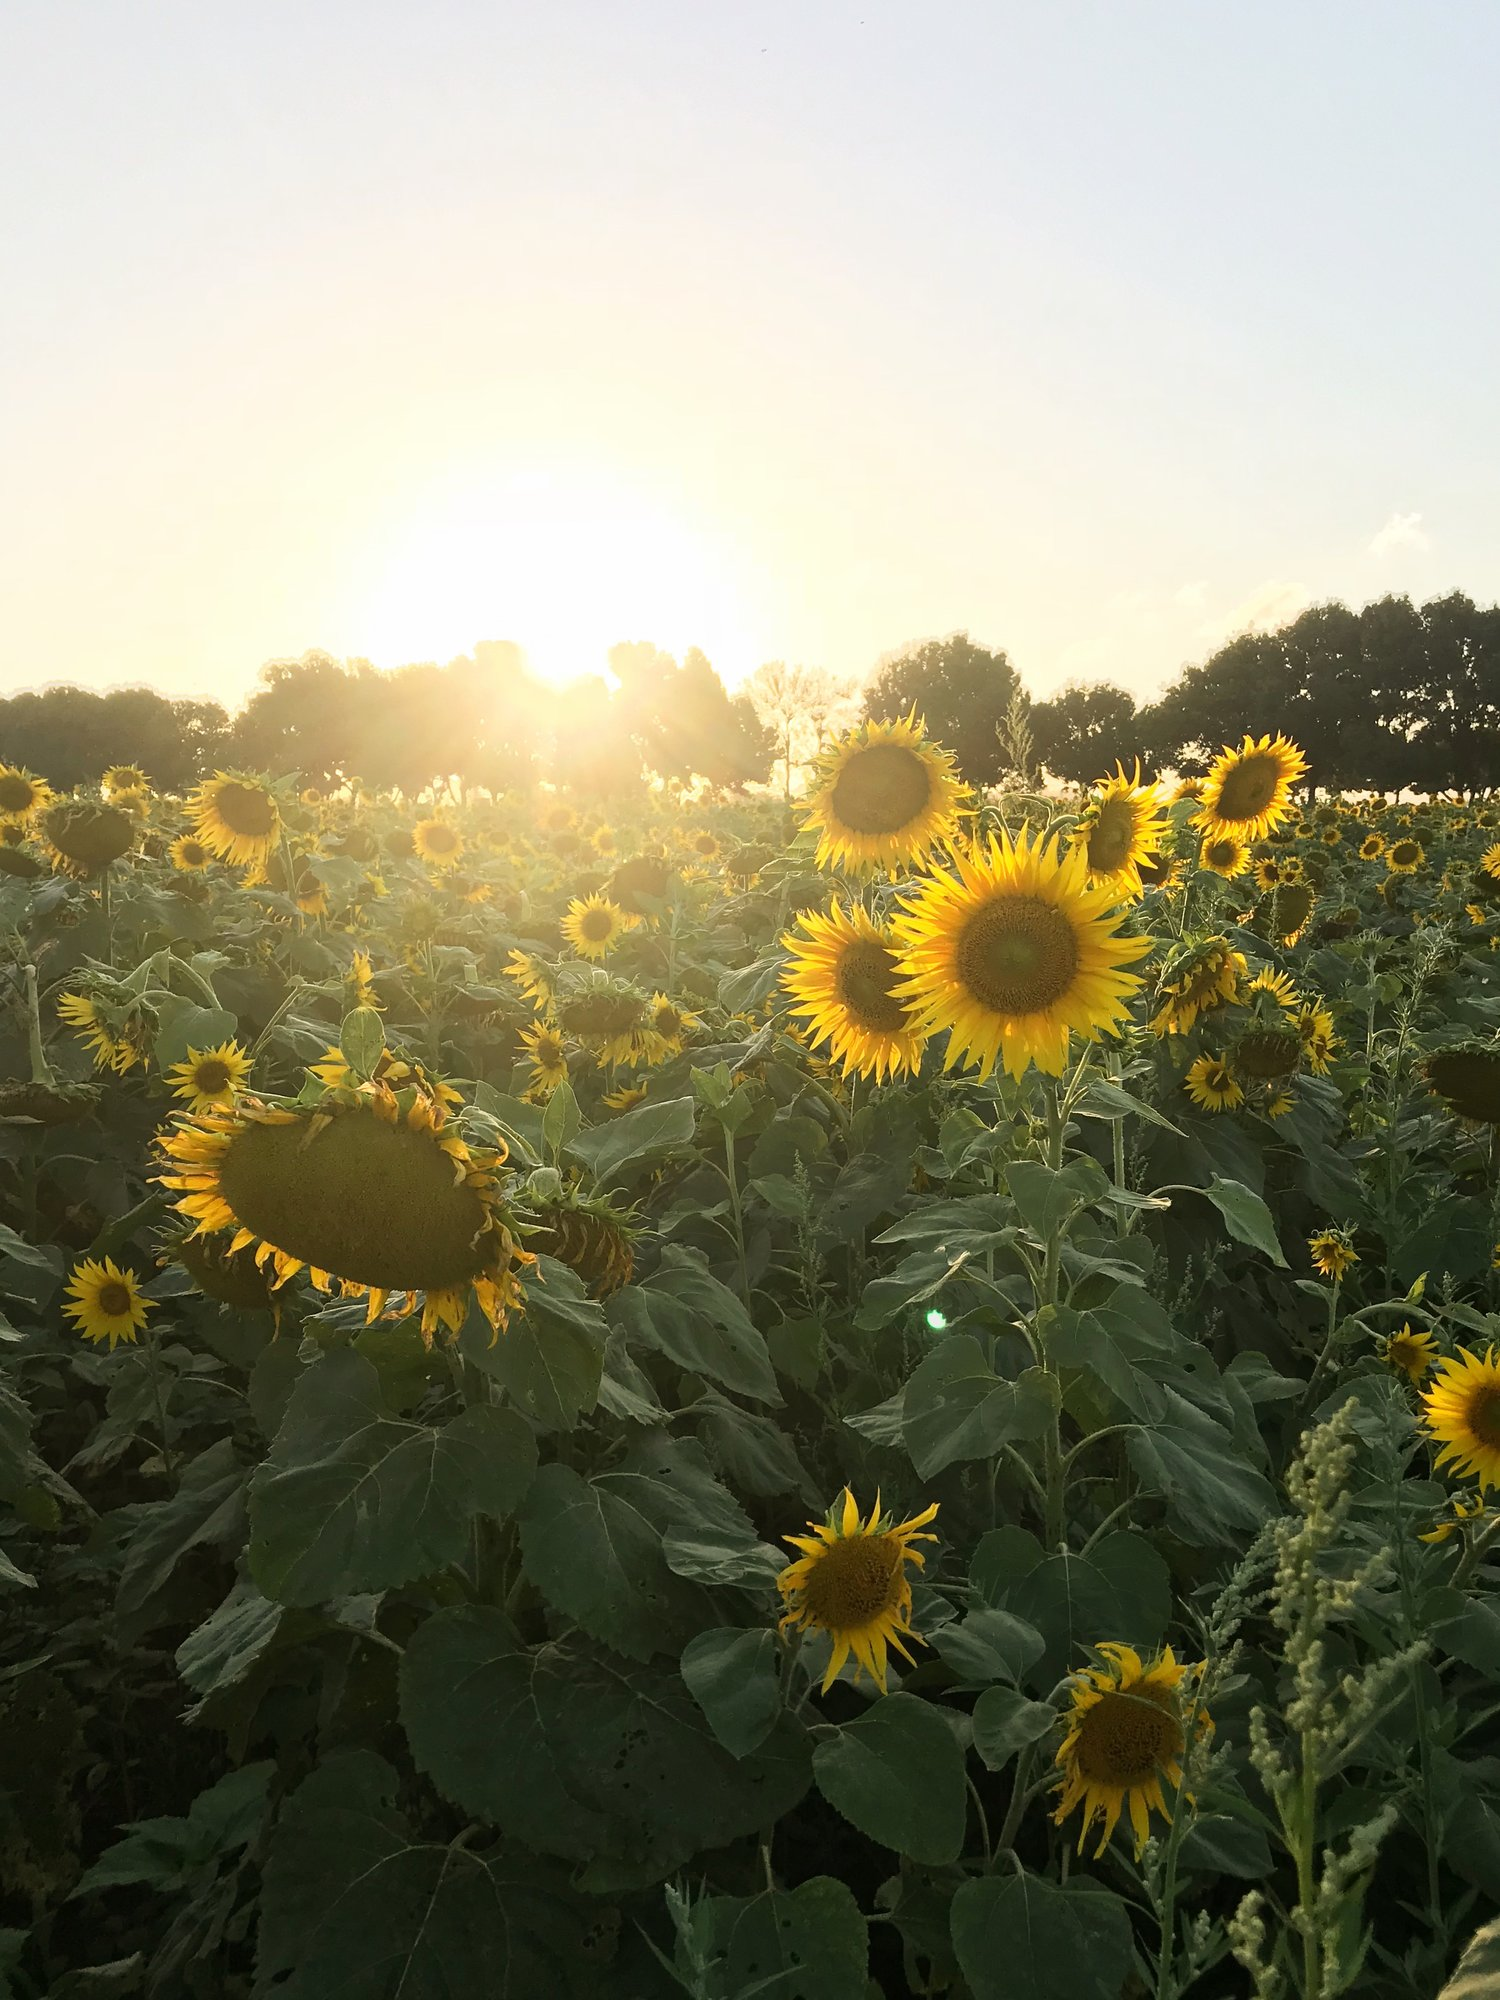 Sunflower Fields - Farm & Co - Kingscliff, New South Wales. (On border of Gold Coast Queensland)